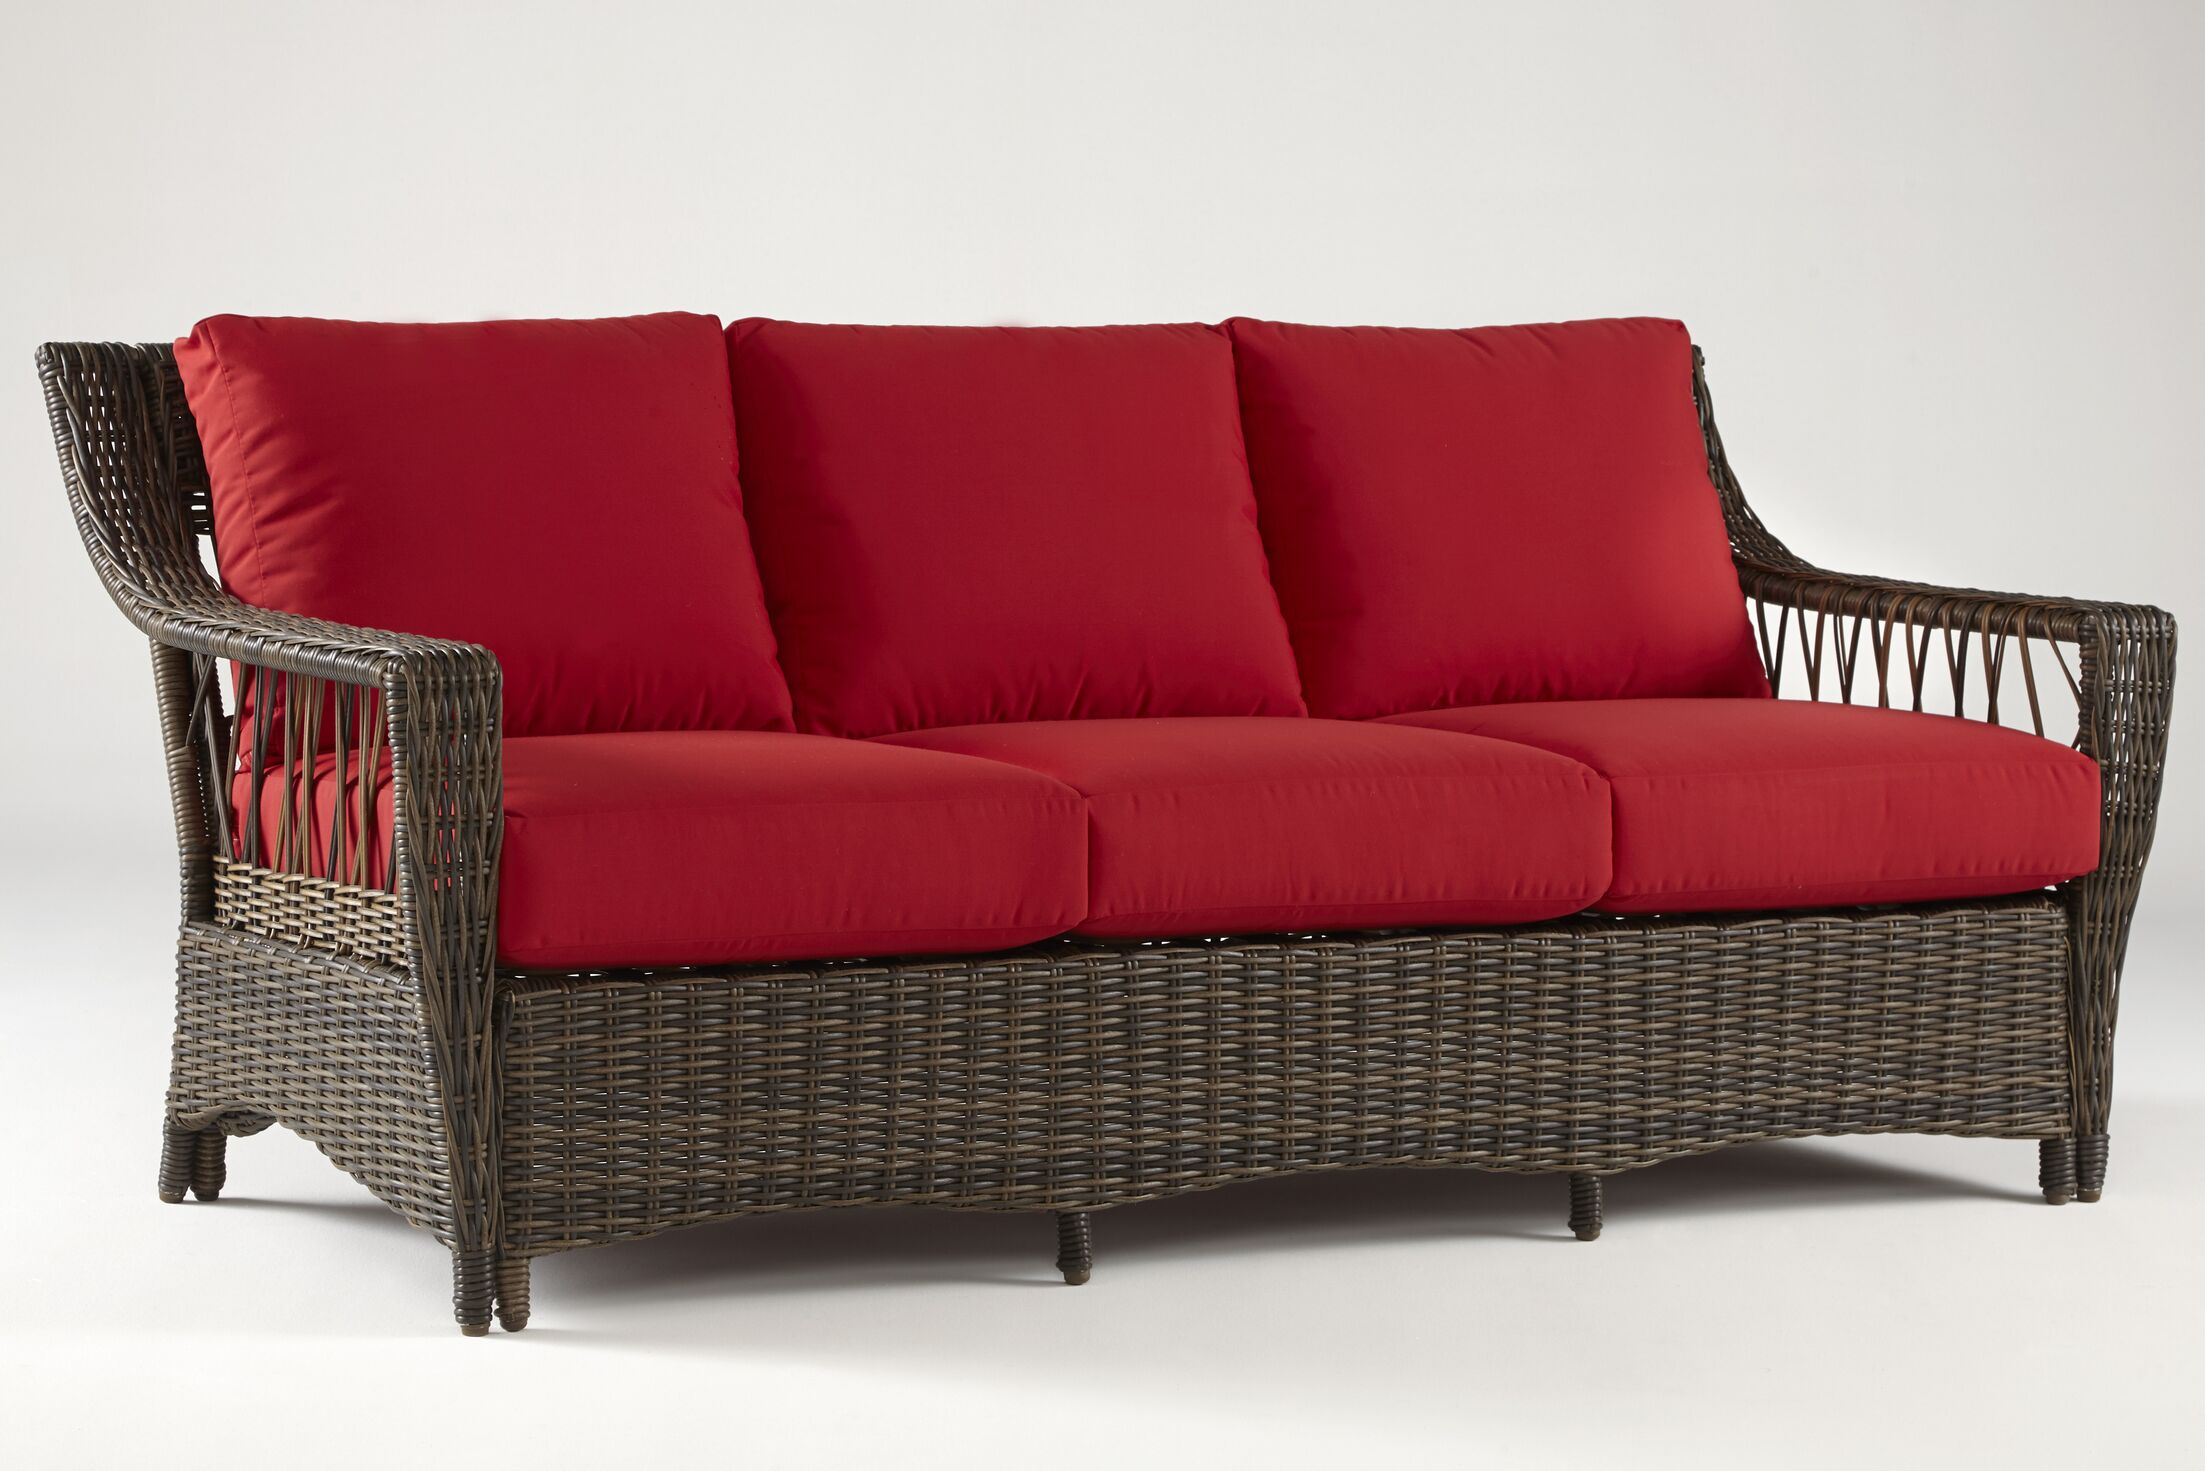 Satterwhite Sofa with Cushions Color: Cast Shale